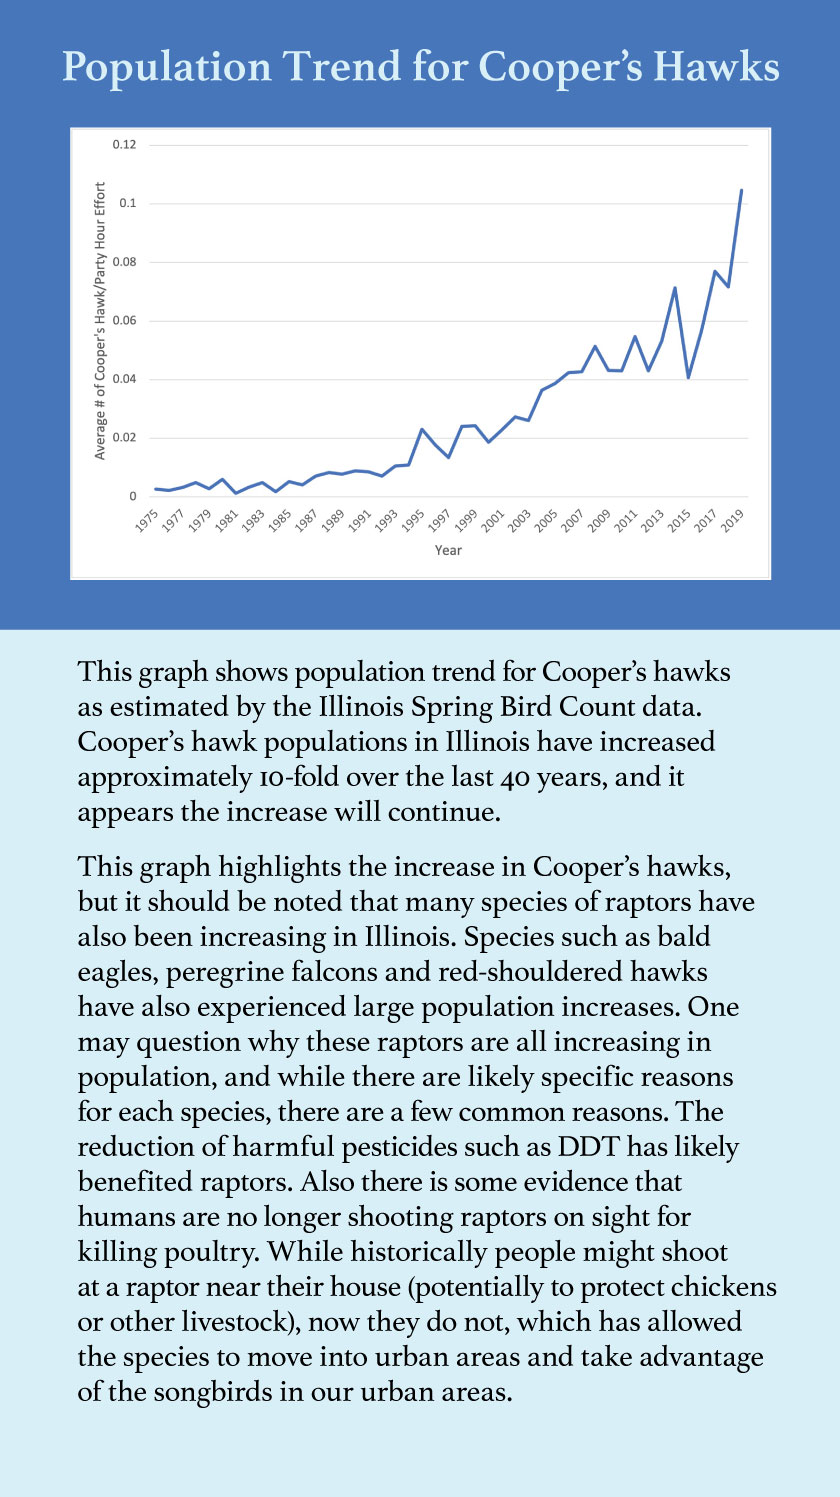 A graph indicating the population trend for Cooper's hawks as estimated by the Illinois Spring Bird Count data.